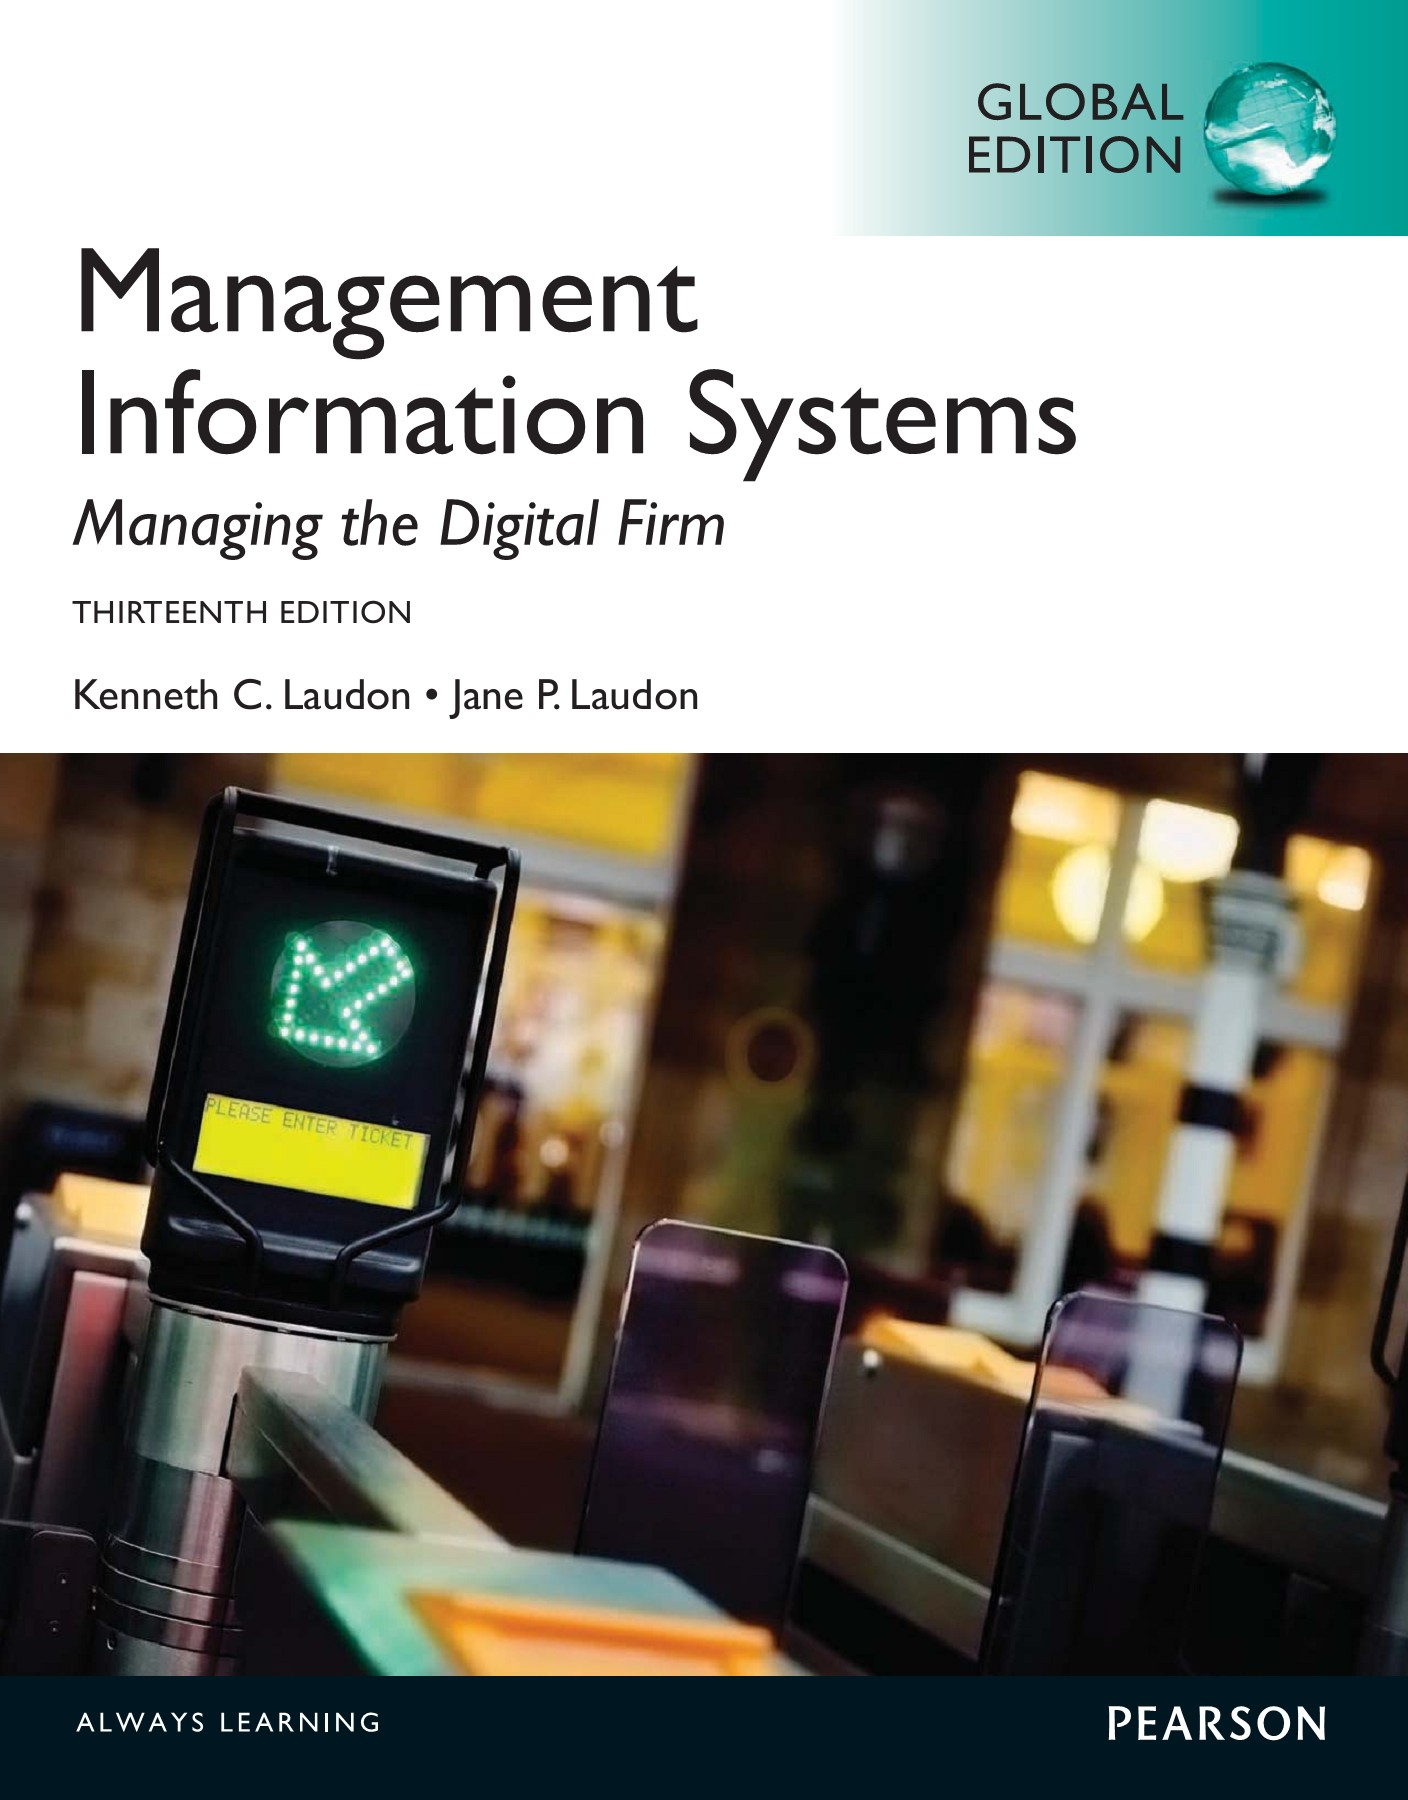 Management Information Systems - Managing the Digital Firm Pages 51